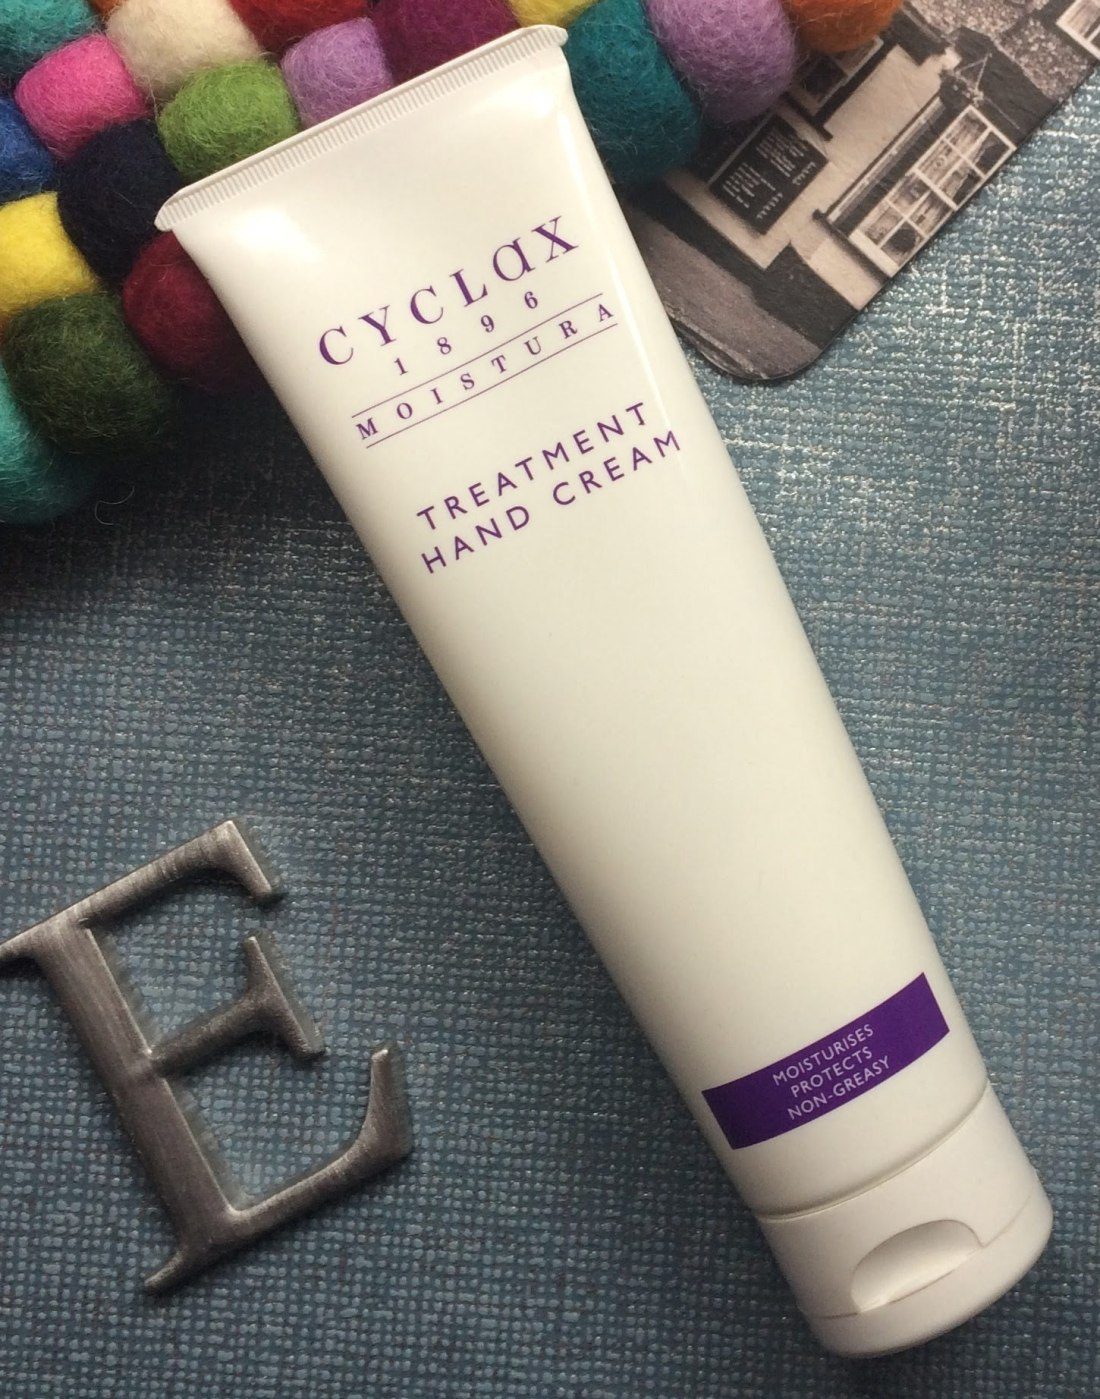 Cylax hand cream and metal capital E